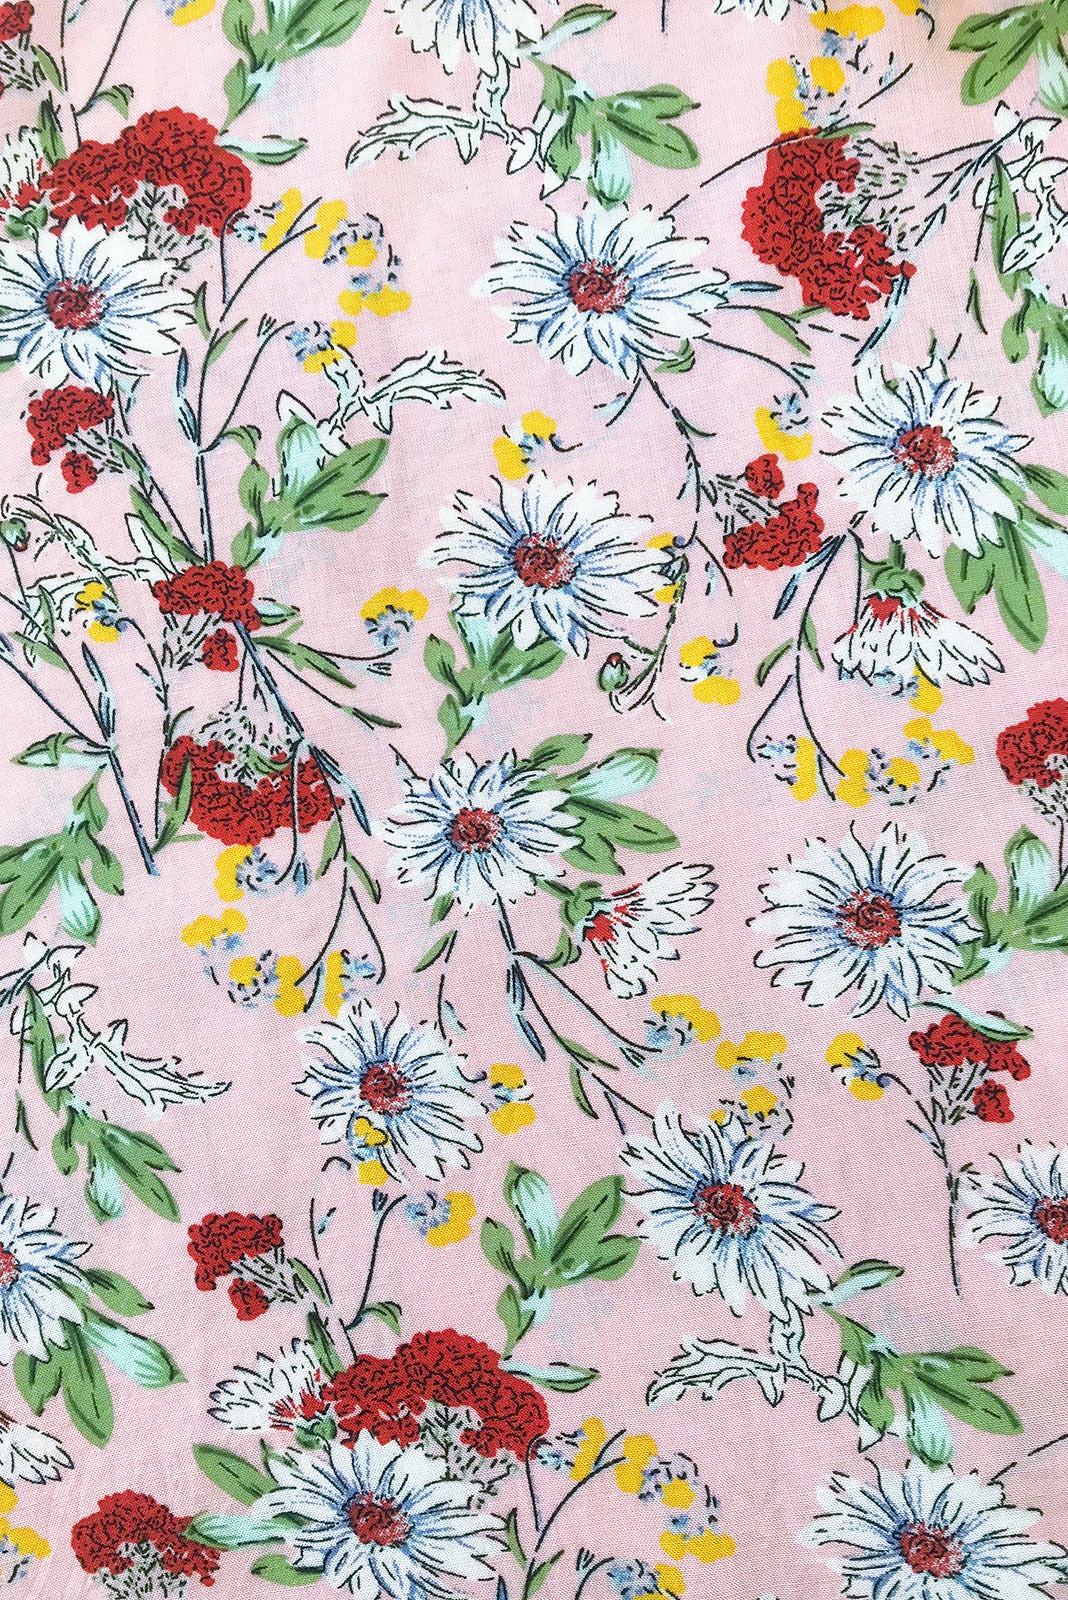 Fabric Swatch of Day Tripper Pink Perfection Top featuring 100% viscose in pale pink base with daisy and sweet wildflower print.